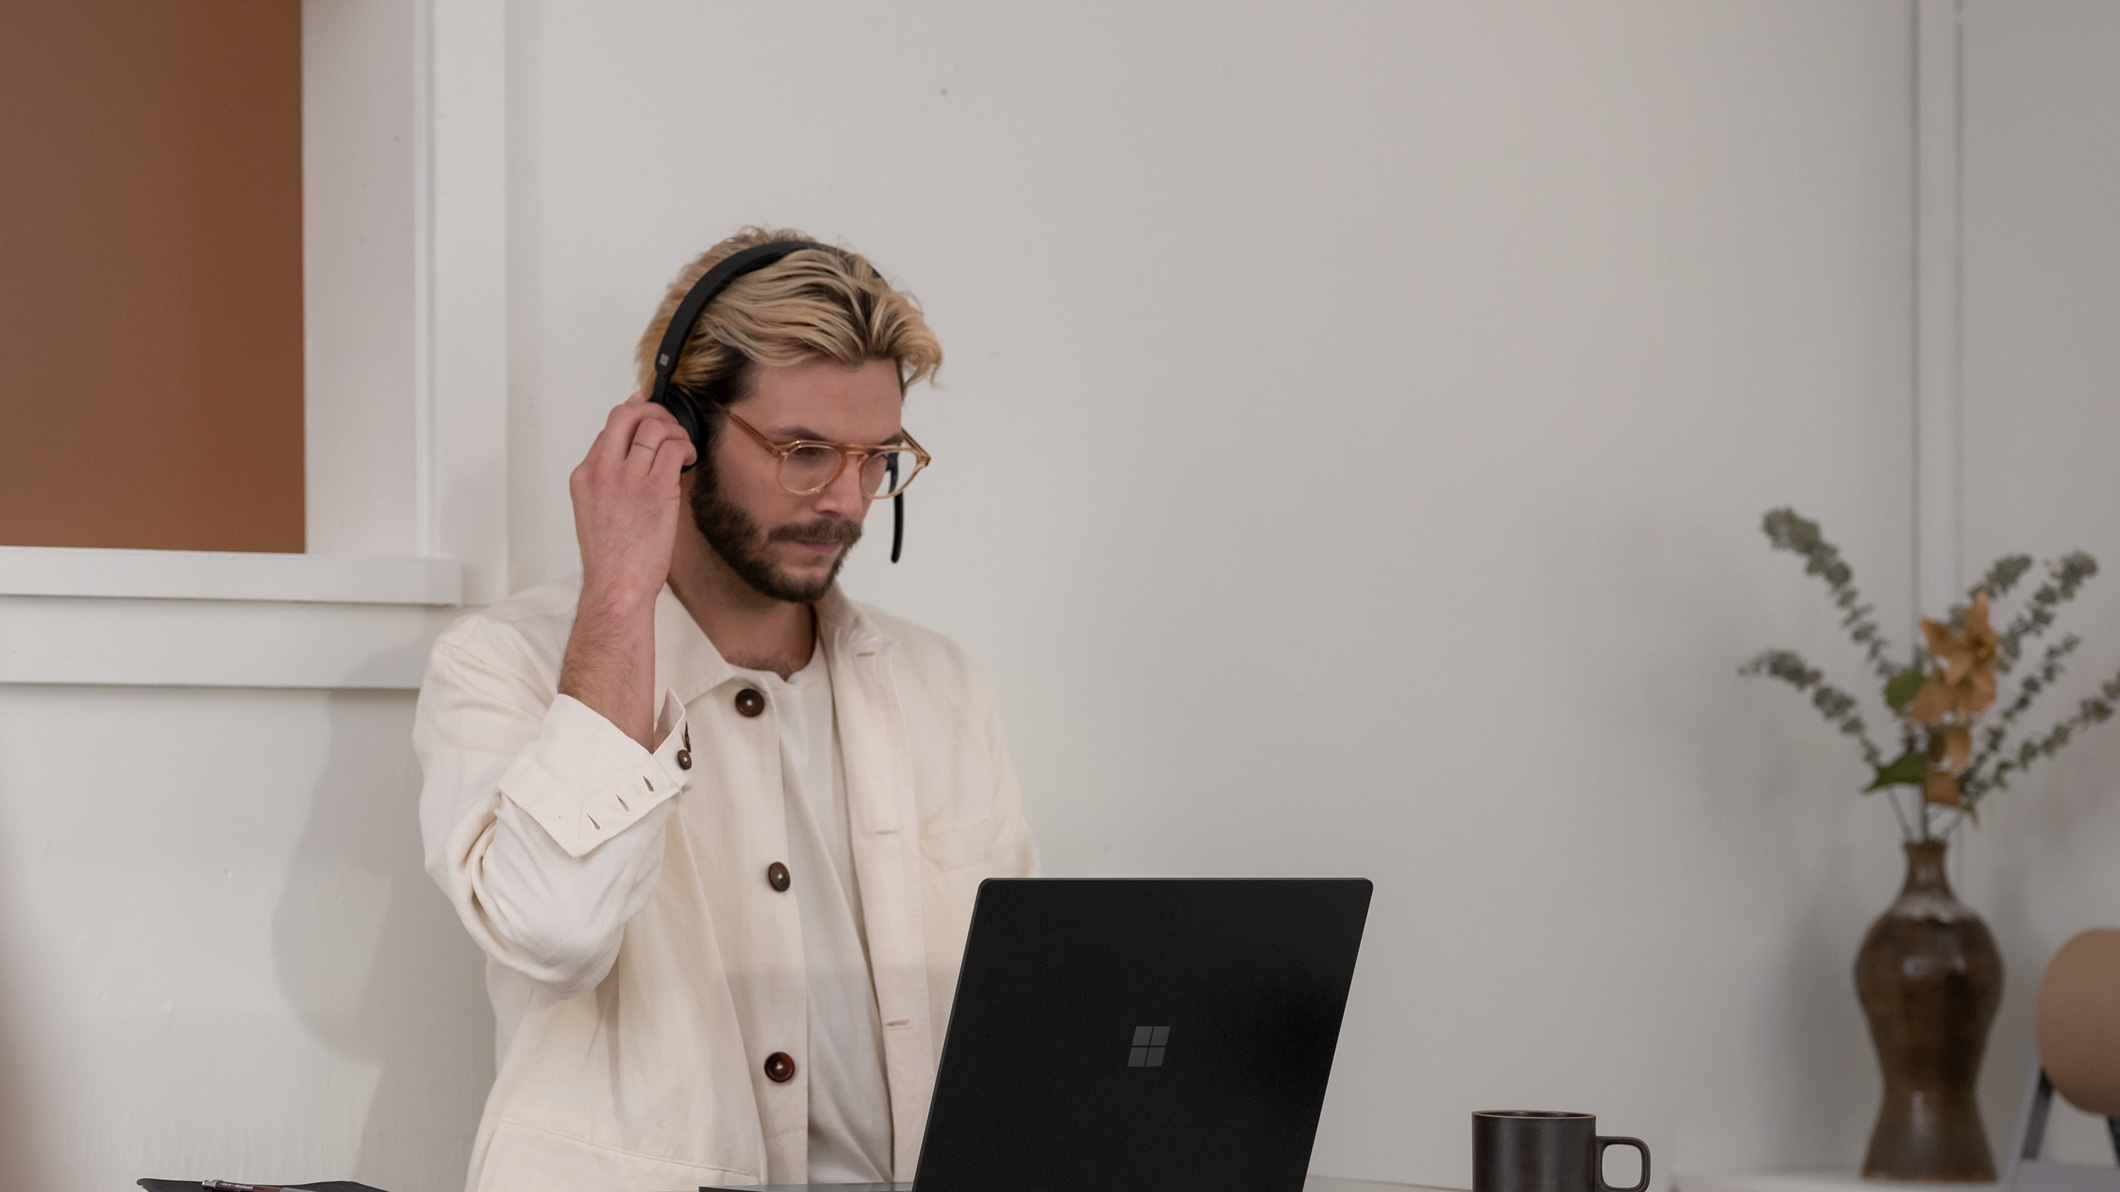 A person uses an Microsoft Modern Wireless Headset for Business while looking at a device.